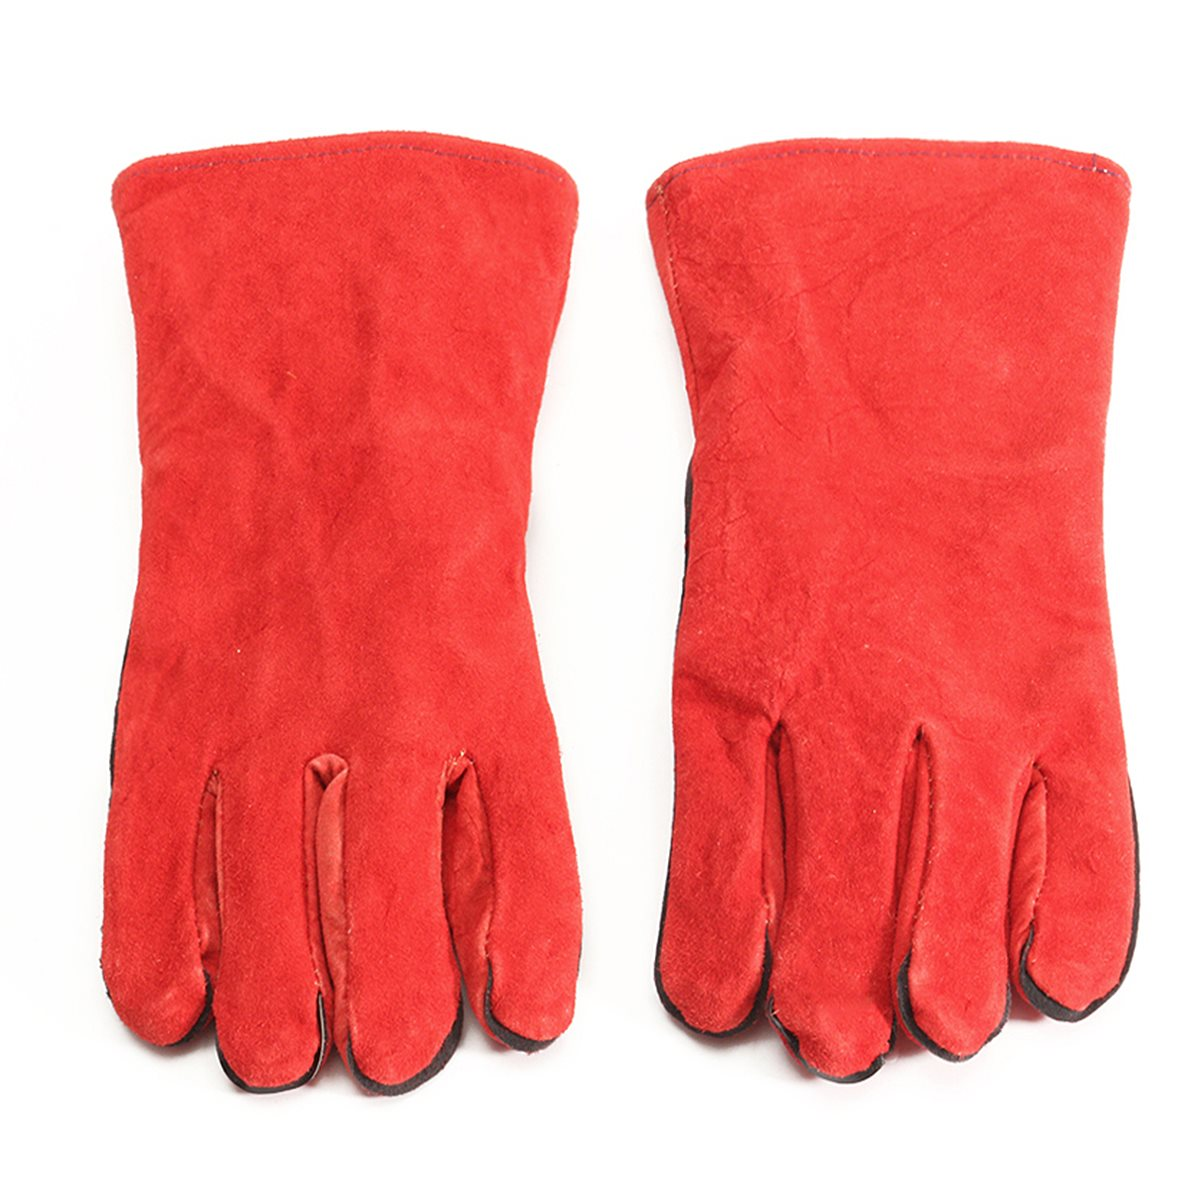 Buy leather gauntlet gloves - Xl Leather Welder Gauntlet Log Fire High Temperature Protection Long Glove Stove Safety Gloves China